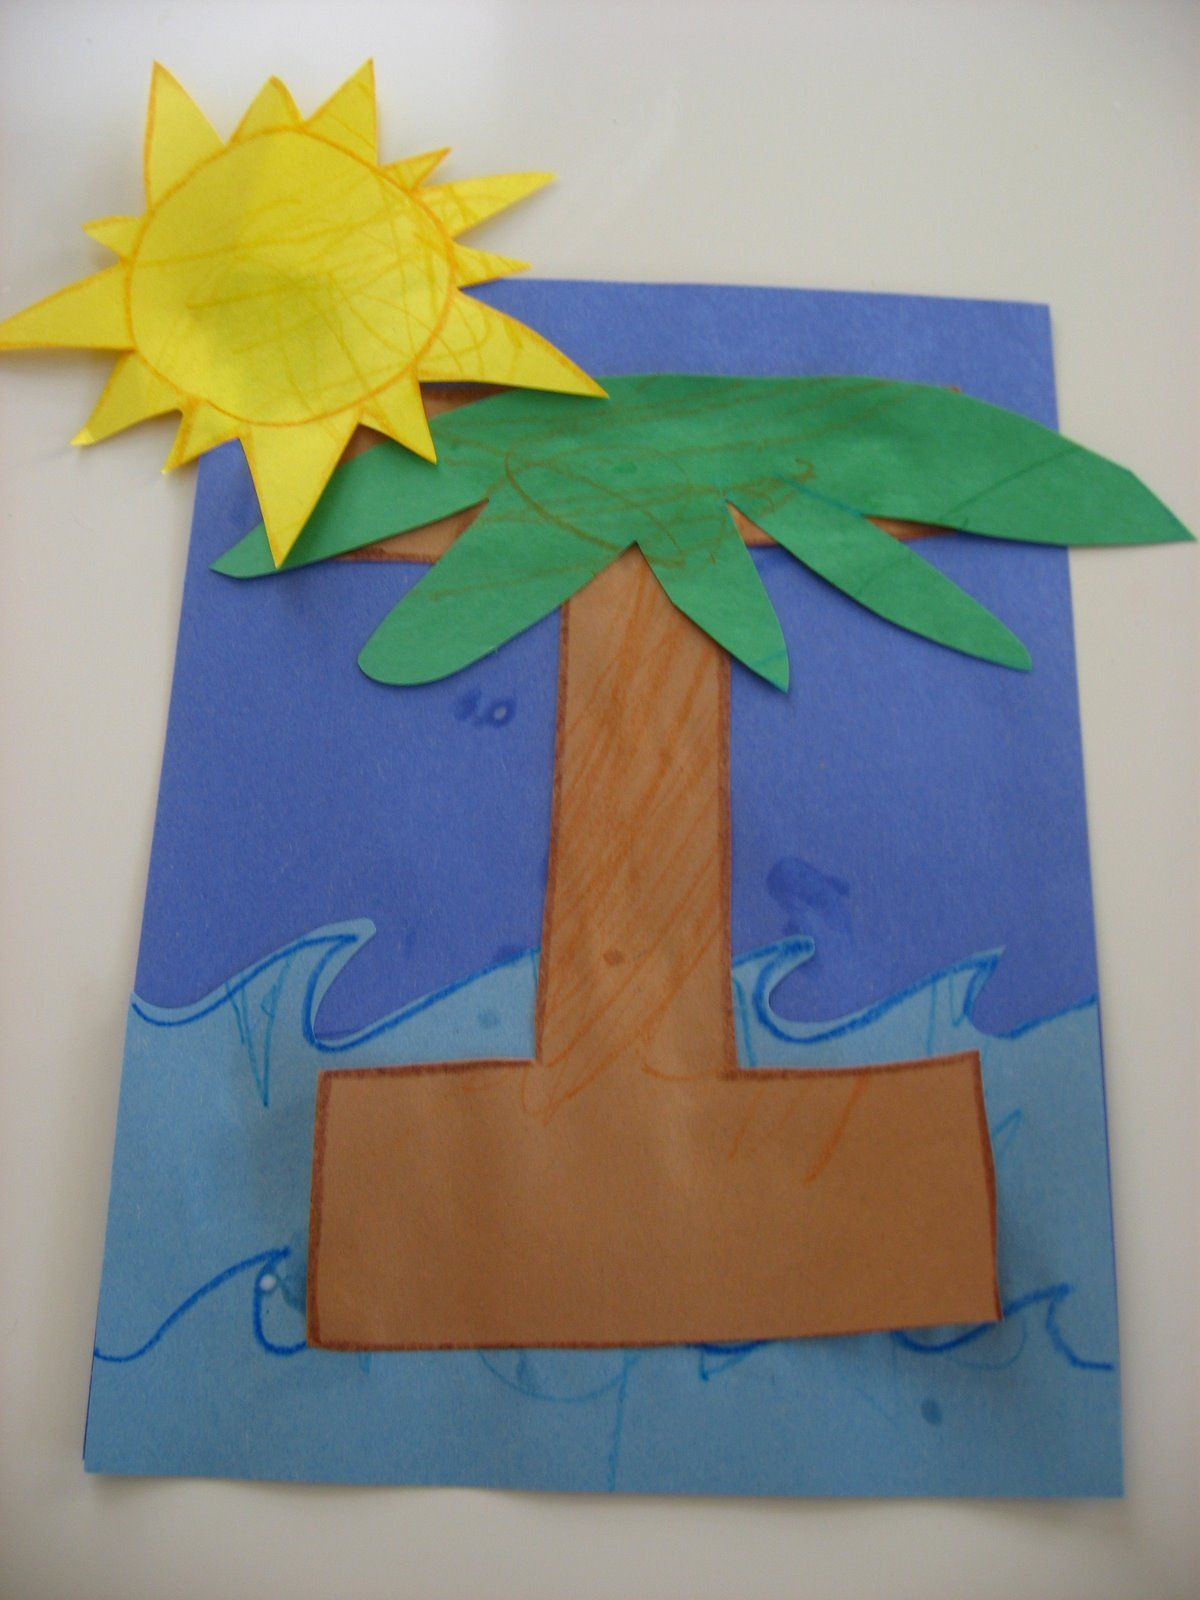 Best ideas about I Crafts For Preschoolers . Save or Pin Letter I preschool craft island Kids crafts Now.